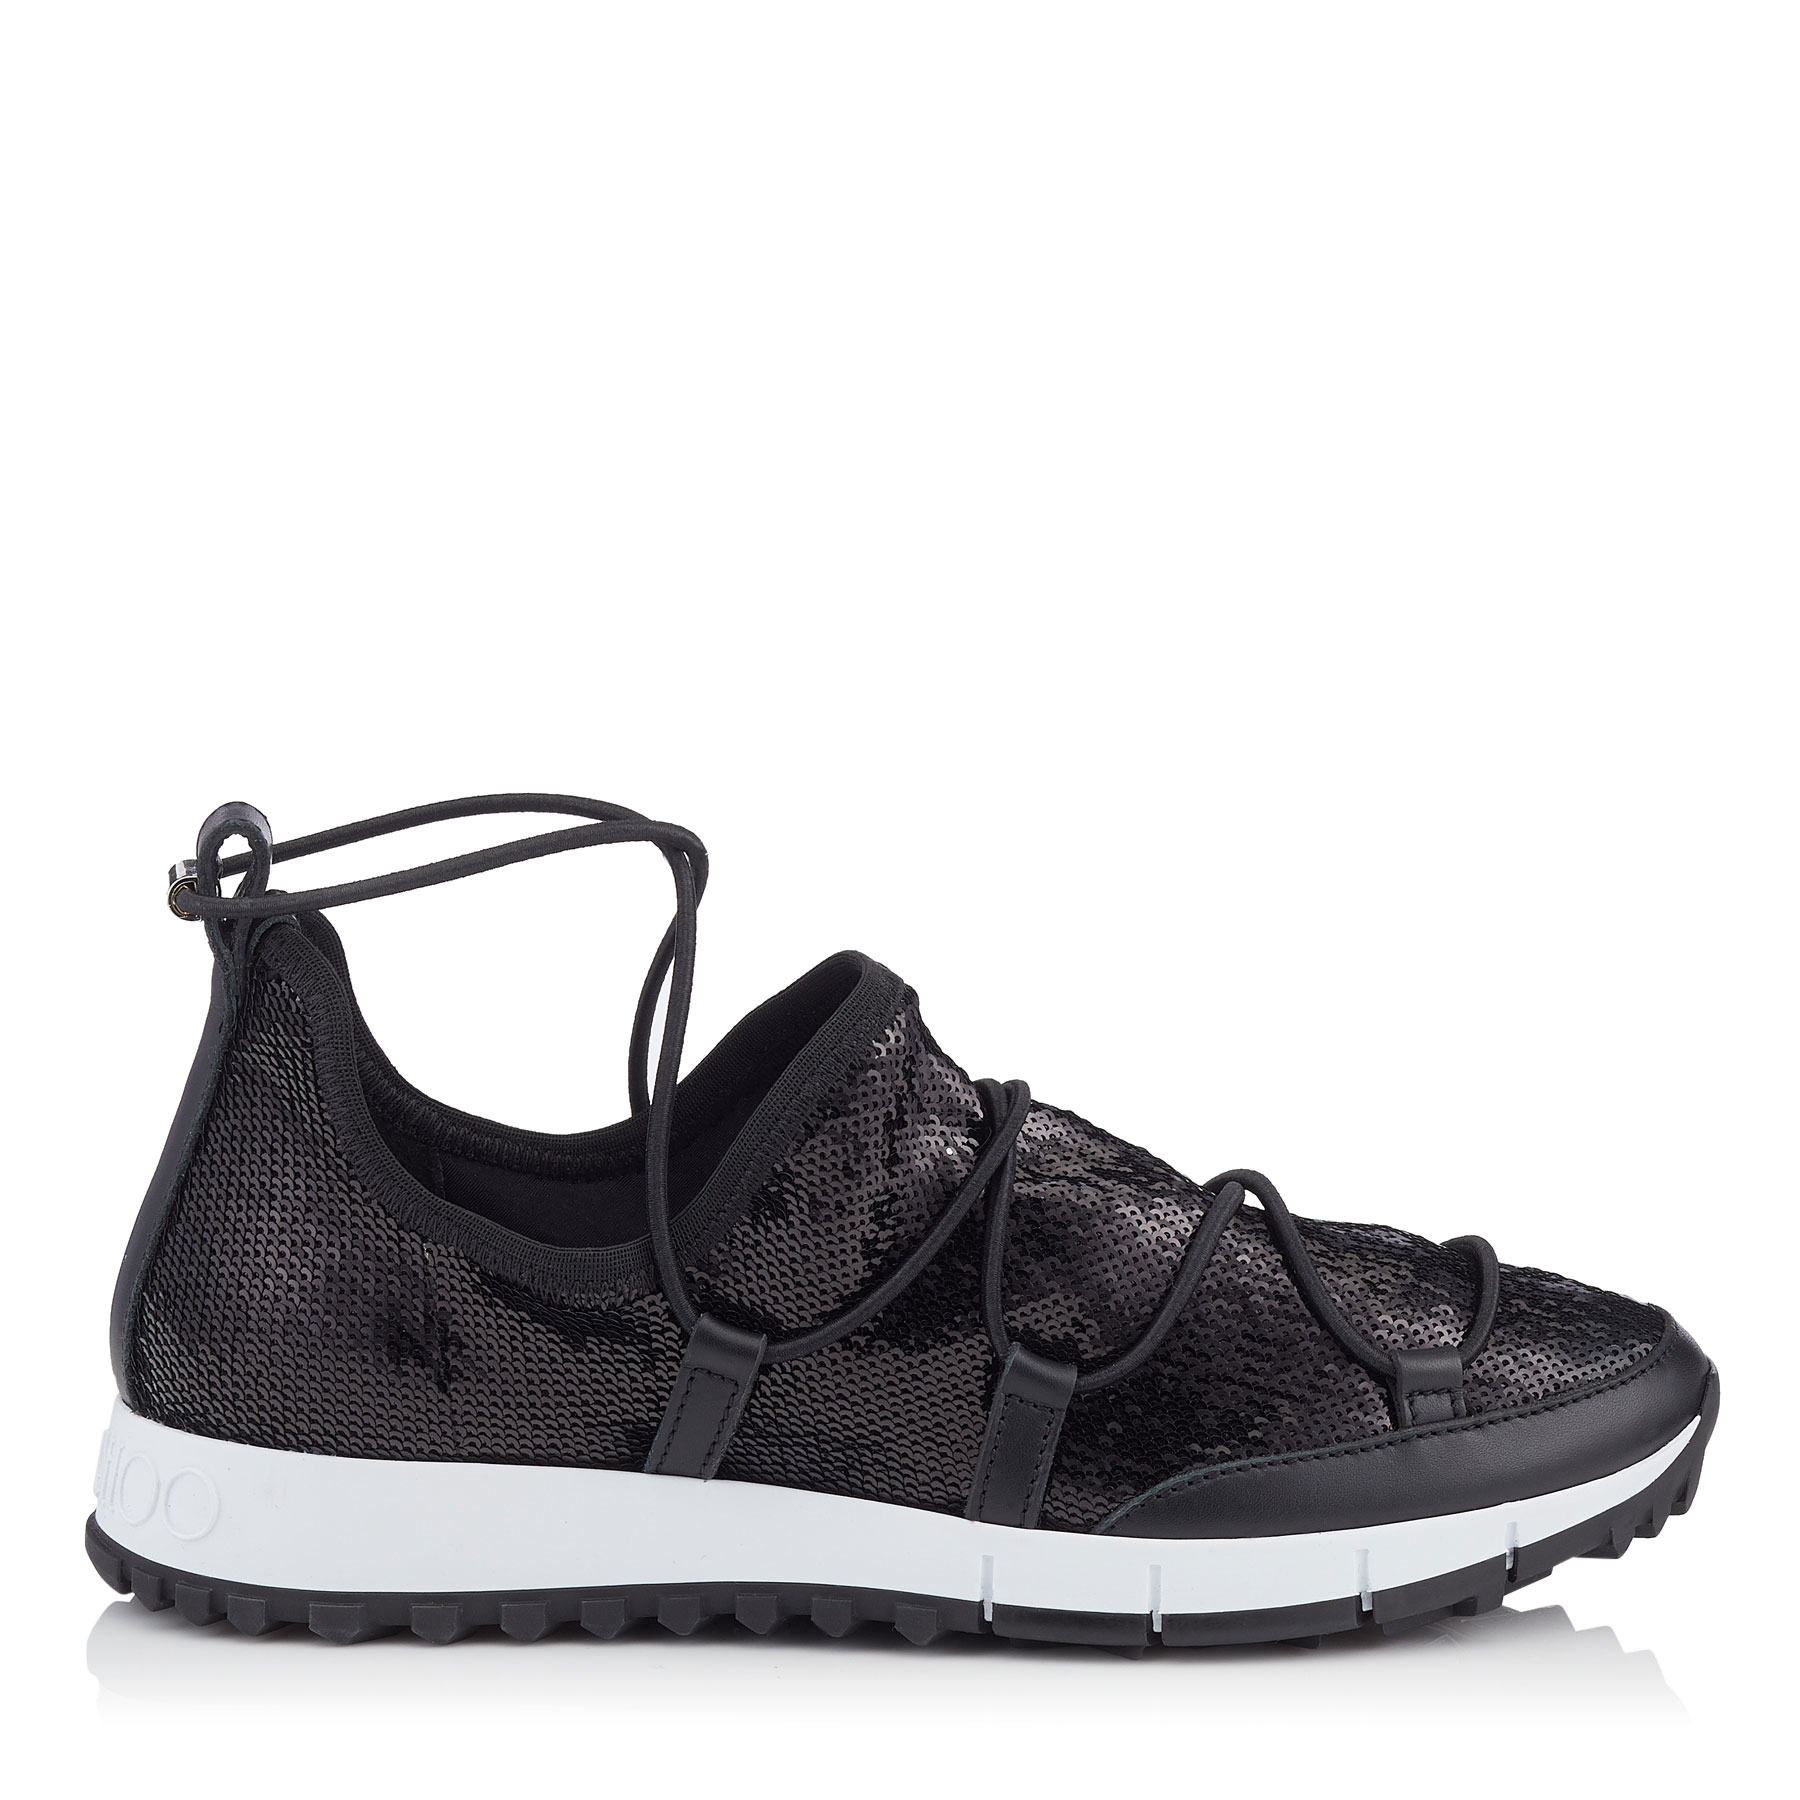 ANDREA Black Stretched Paillettes Trainers by Jimmy Choo